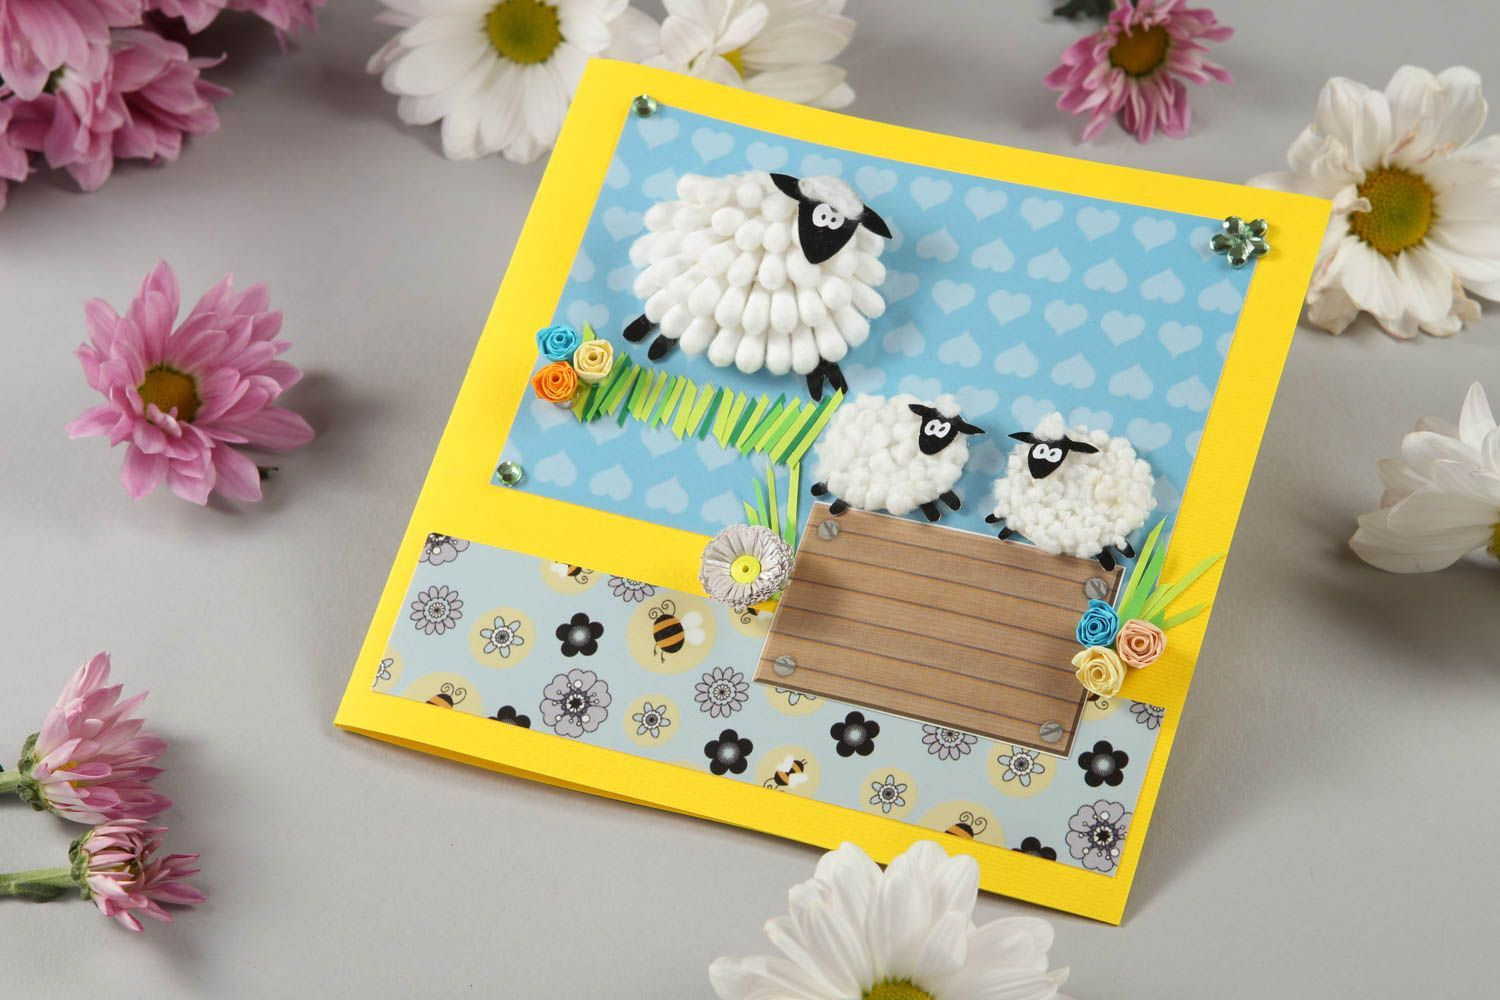 Madeheart Beautiful Handmade Greeting Card Scrapbooking Ideas